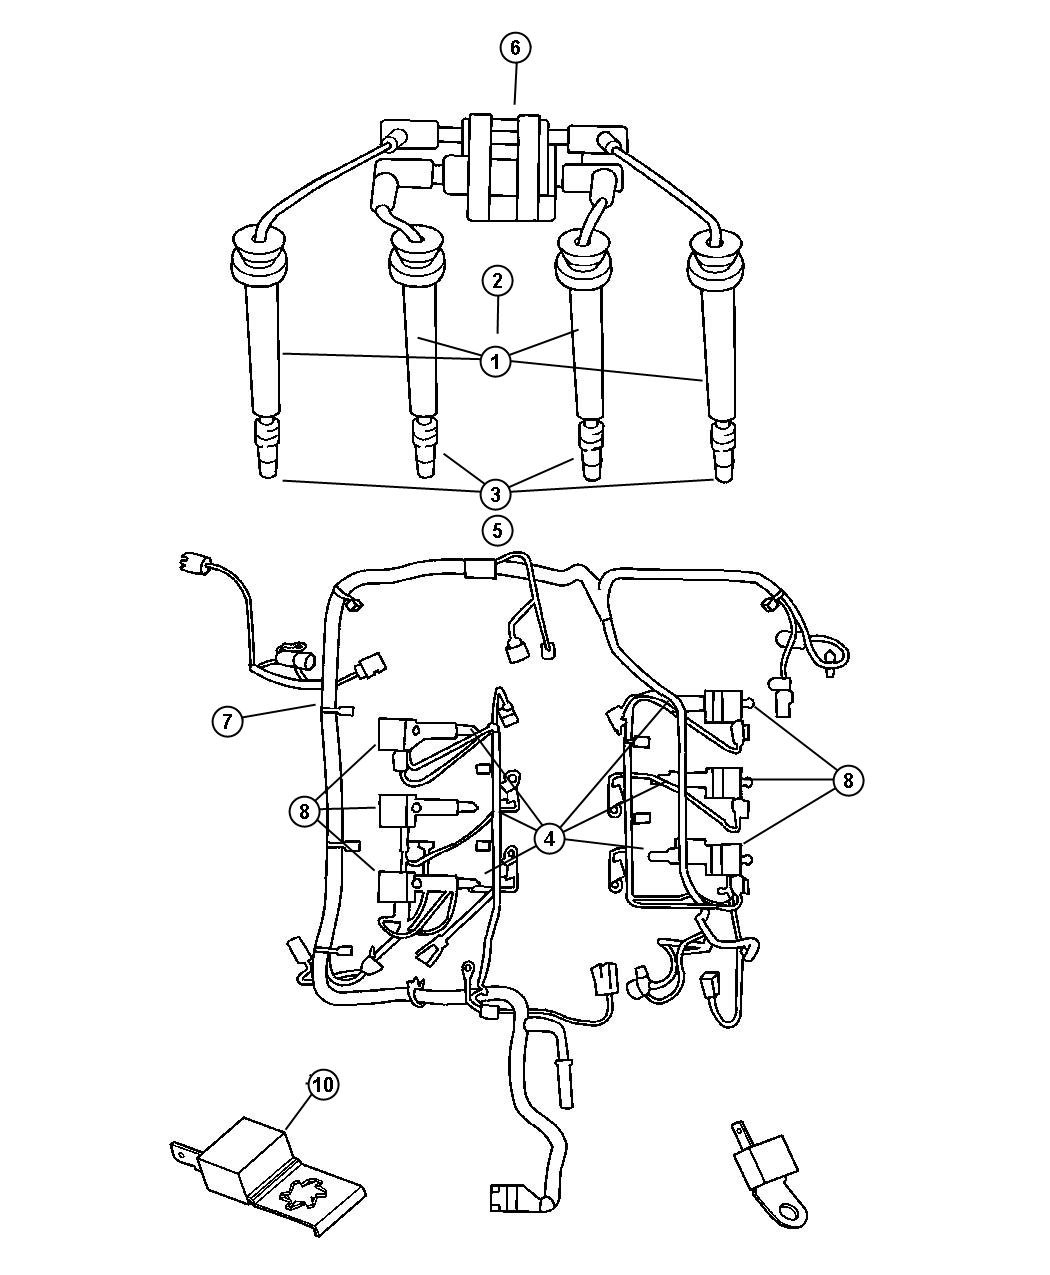 hight resolution of wiring diagram for 2004 chrysler cirrus get free image chrysler 300 ignition switch actuator chrysler 300 ignition switch actuator